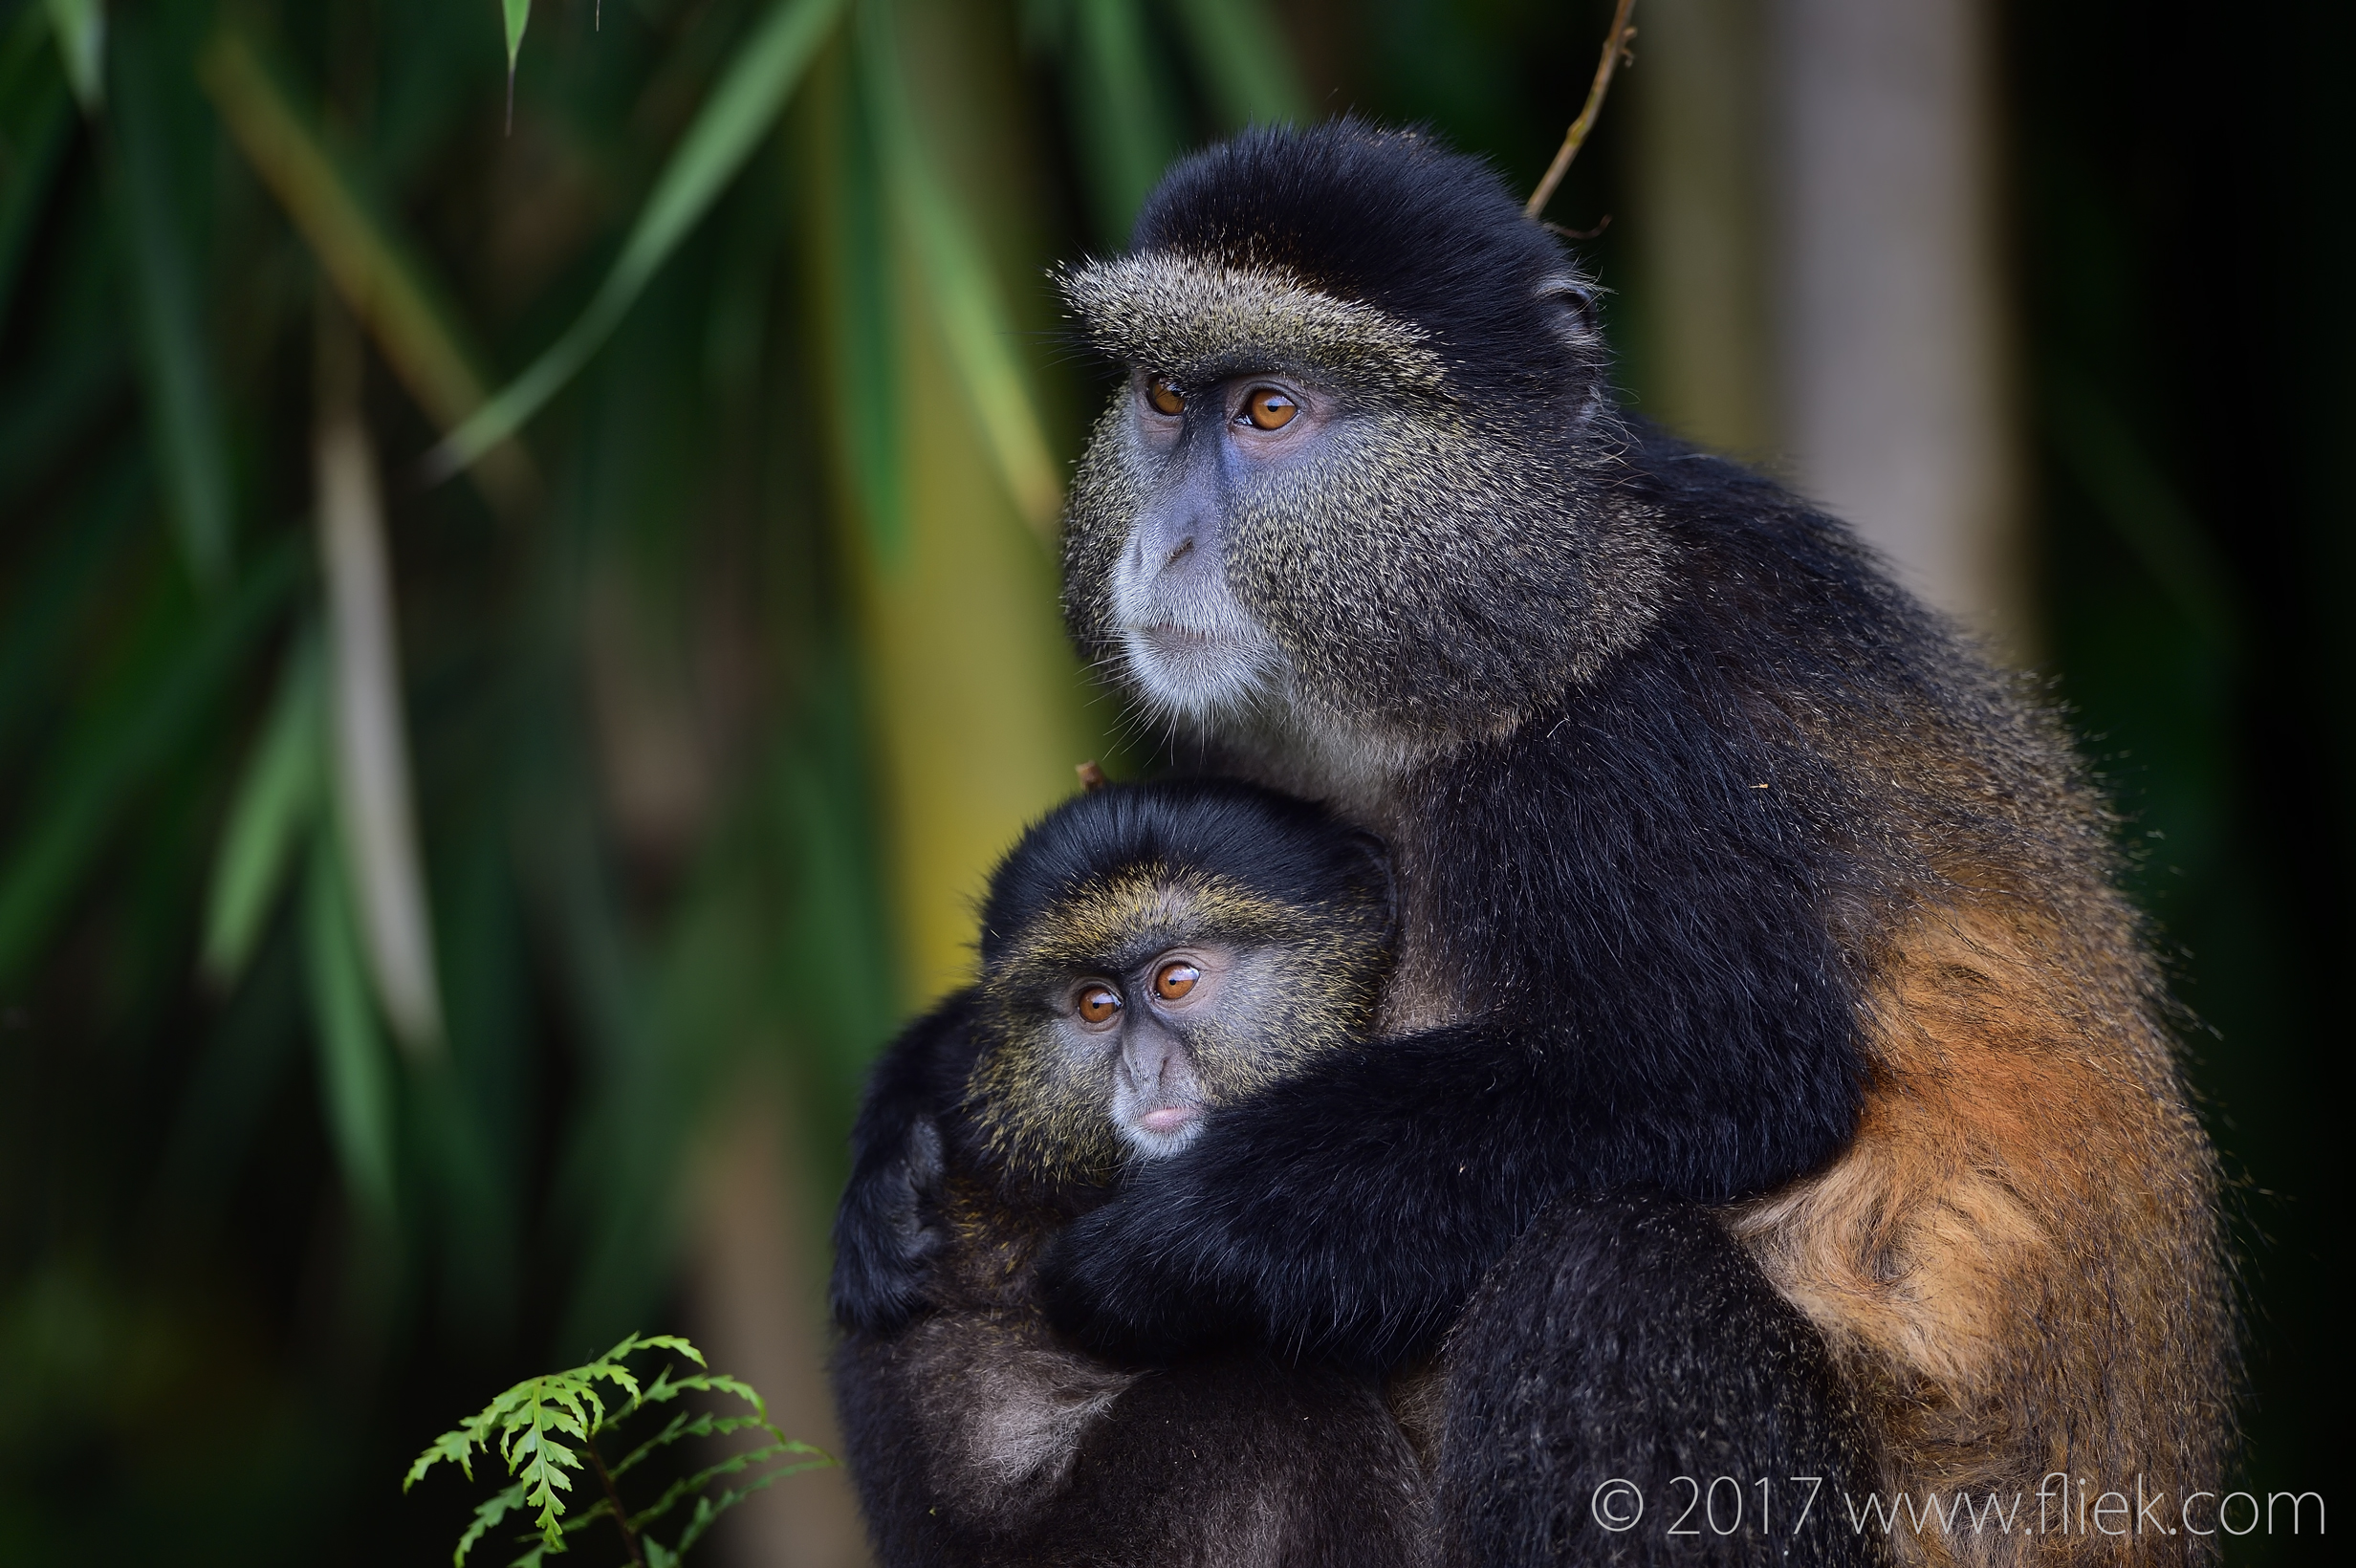 d4s-golden-monkey-mum-and-baby